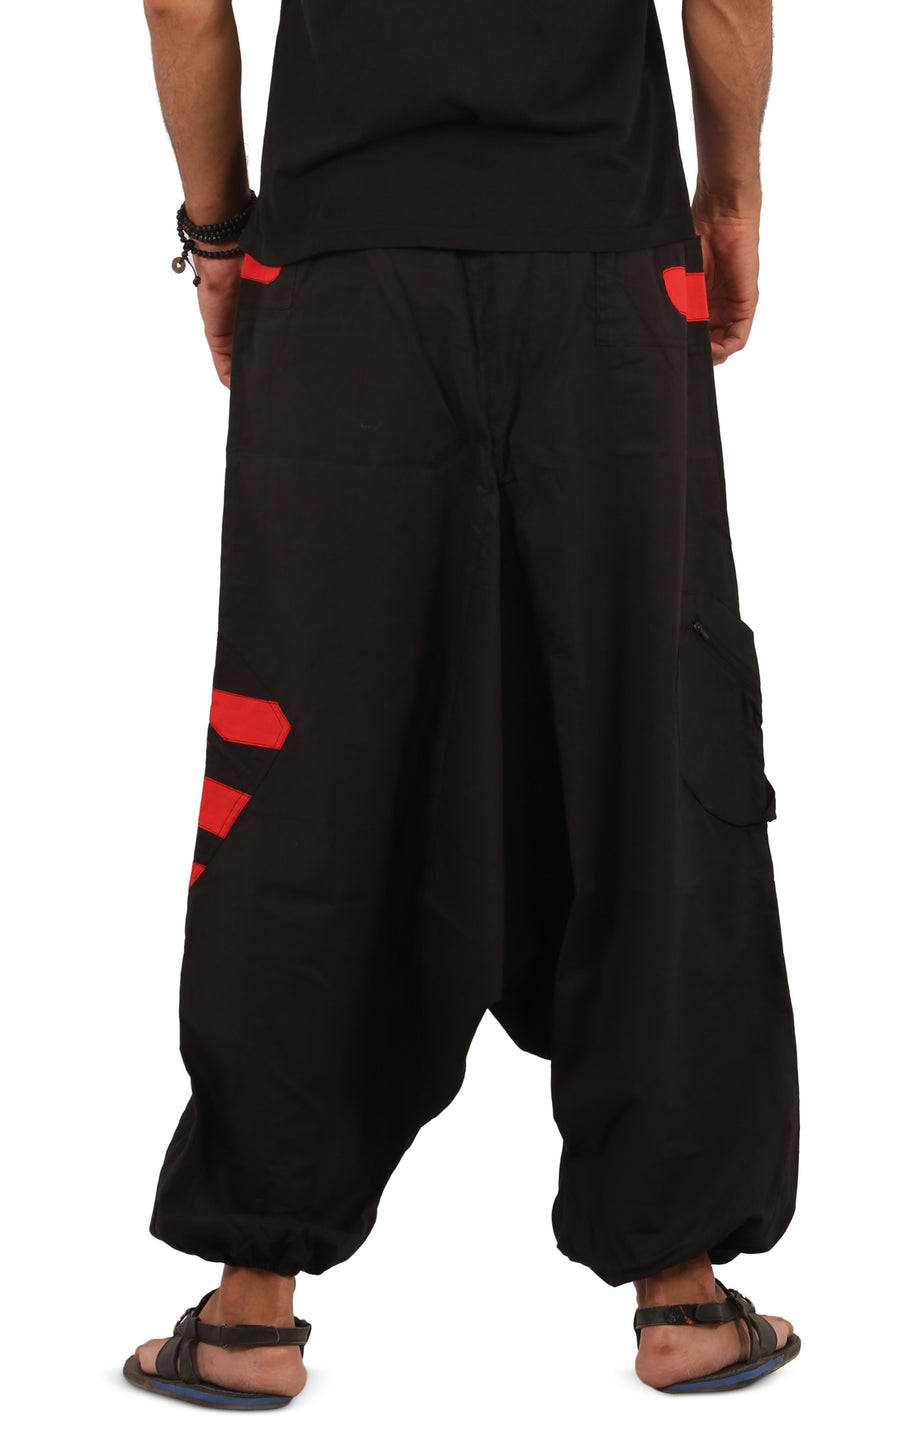 Harem Pants, Black Harem Pants, Men Harem Pants, Mens Harem Pants, Boho Pants, Genie Pants, Hippie Pants, Wide Leg Pants, Show me Hippie Pants, Show me some Mens Harem Pants, Show me some Womens Harem Pants, What is a harem pant, Show me some baggy pants, I want to buy harem pants, cool harem pants, Wide leg harem Pants, Cheap Harem Pants, Show me best harem pants, Highly rated Harem Pants, Sarouel, Haremshose, Afgani Pants, One Size Fits All Pants,Show me  XXXL Pants